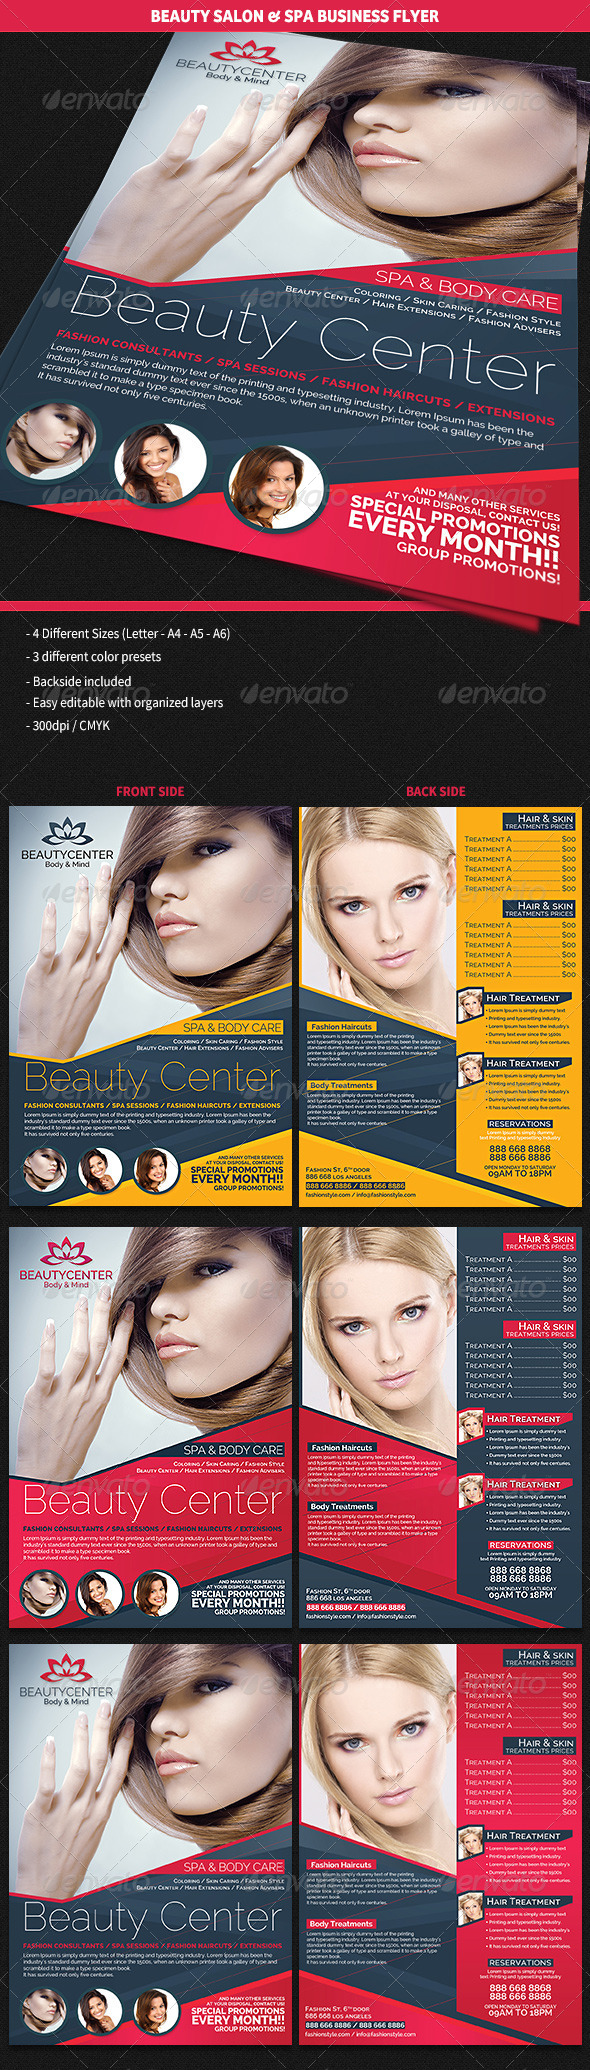 Pedicure And Manicure Flyer Template